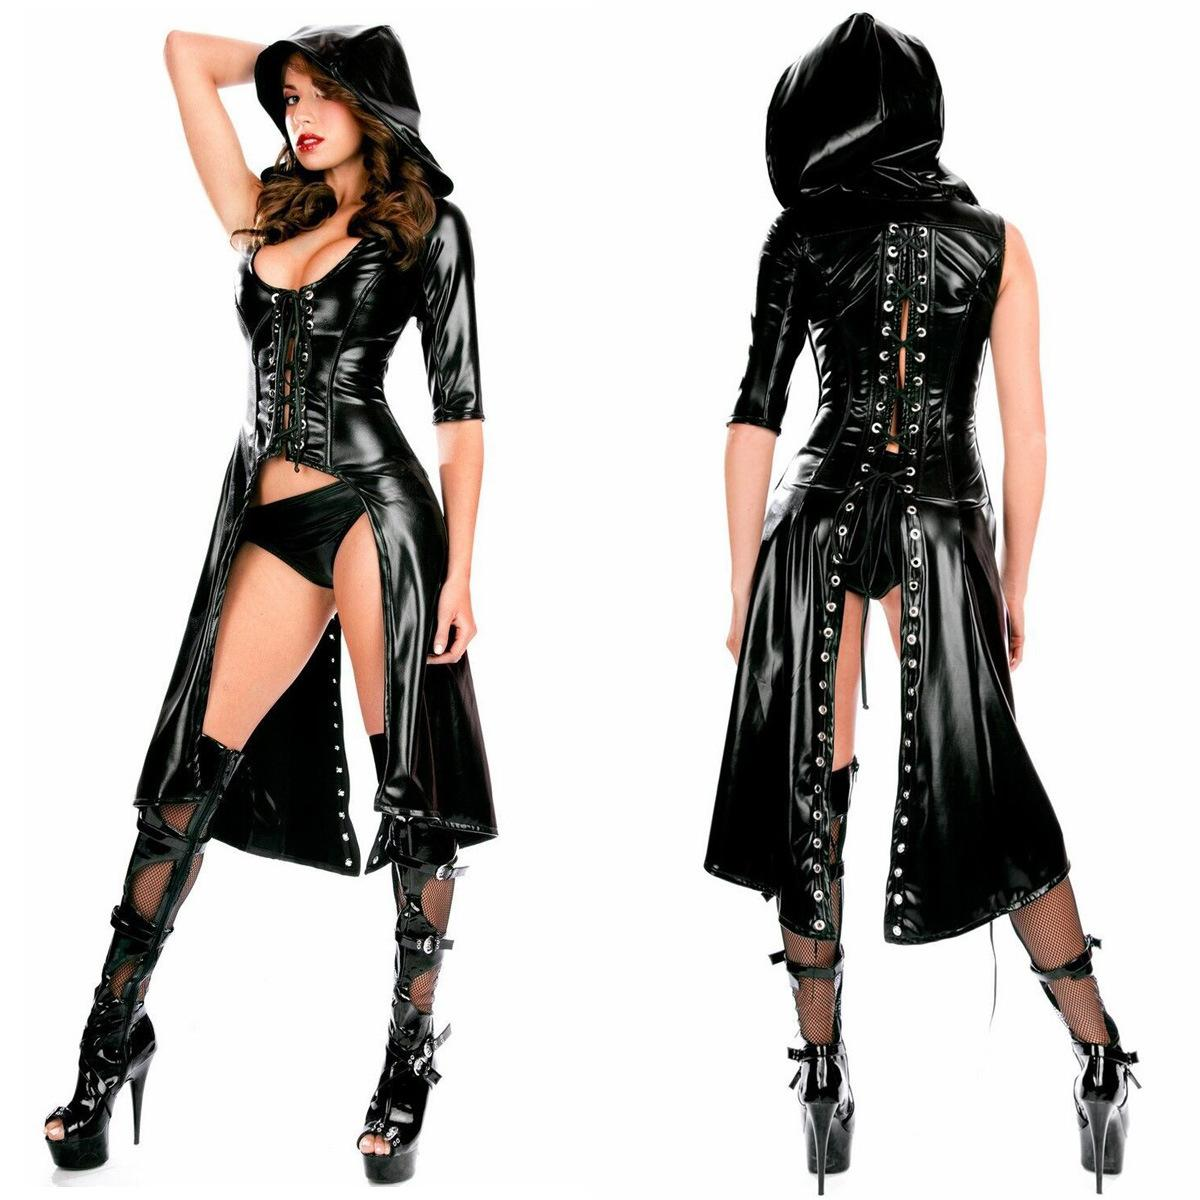 High-End PVC Frauen Sexy Clubwear Leder Latex Capes Body Wet Look PU Bondage Reißverschluss Langes Kleid DS Sänger Pole Dance Catsuit